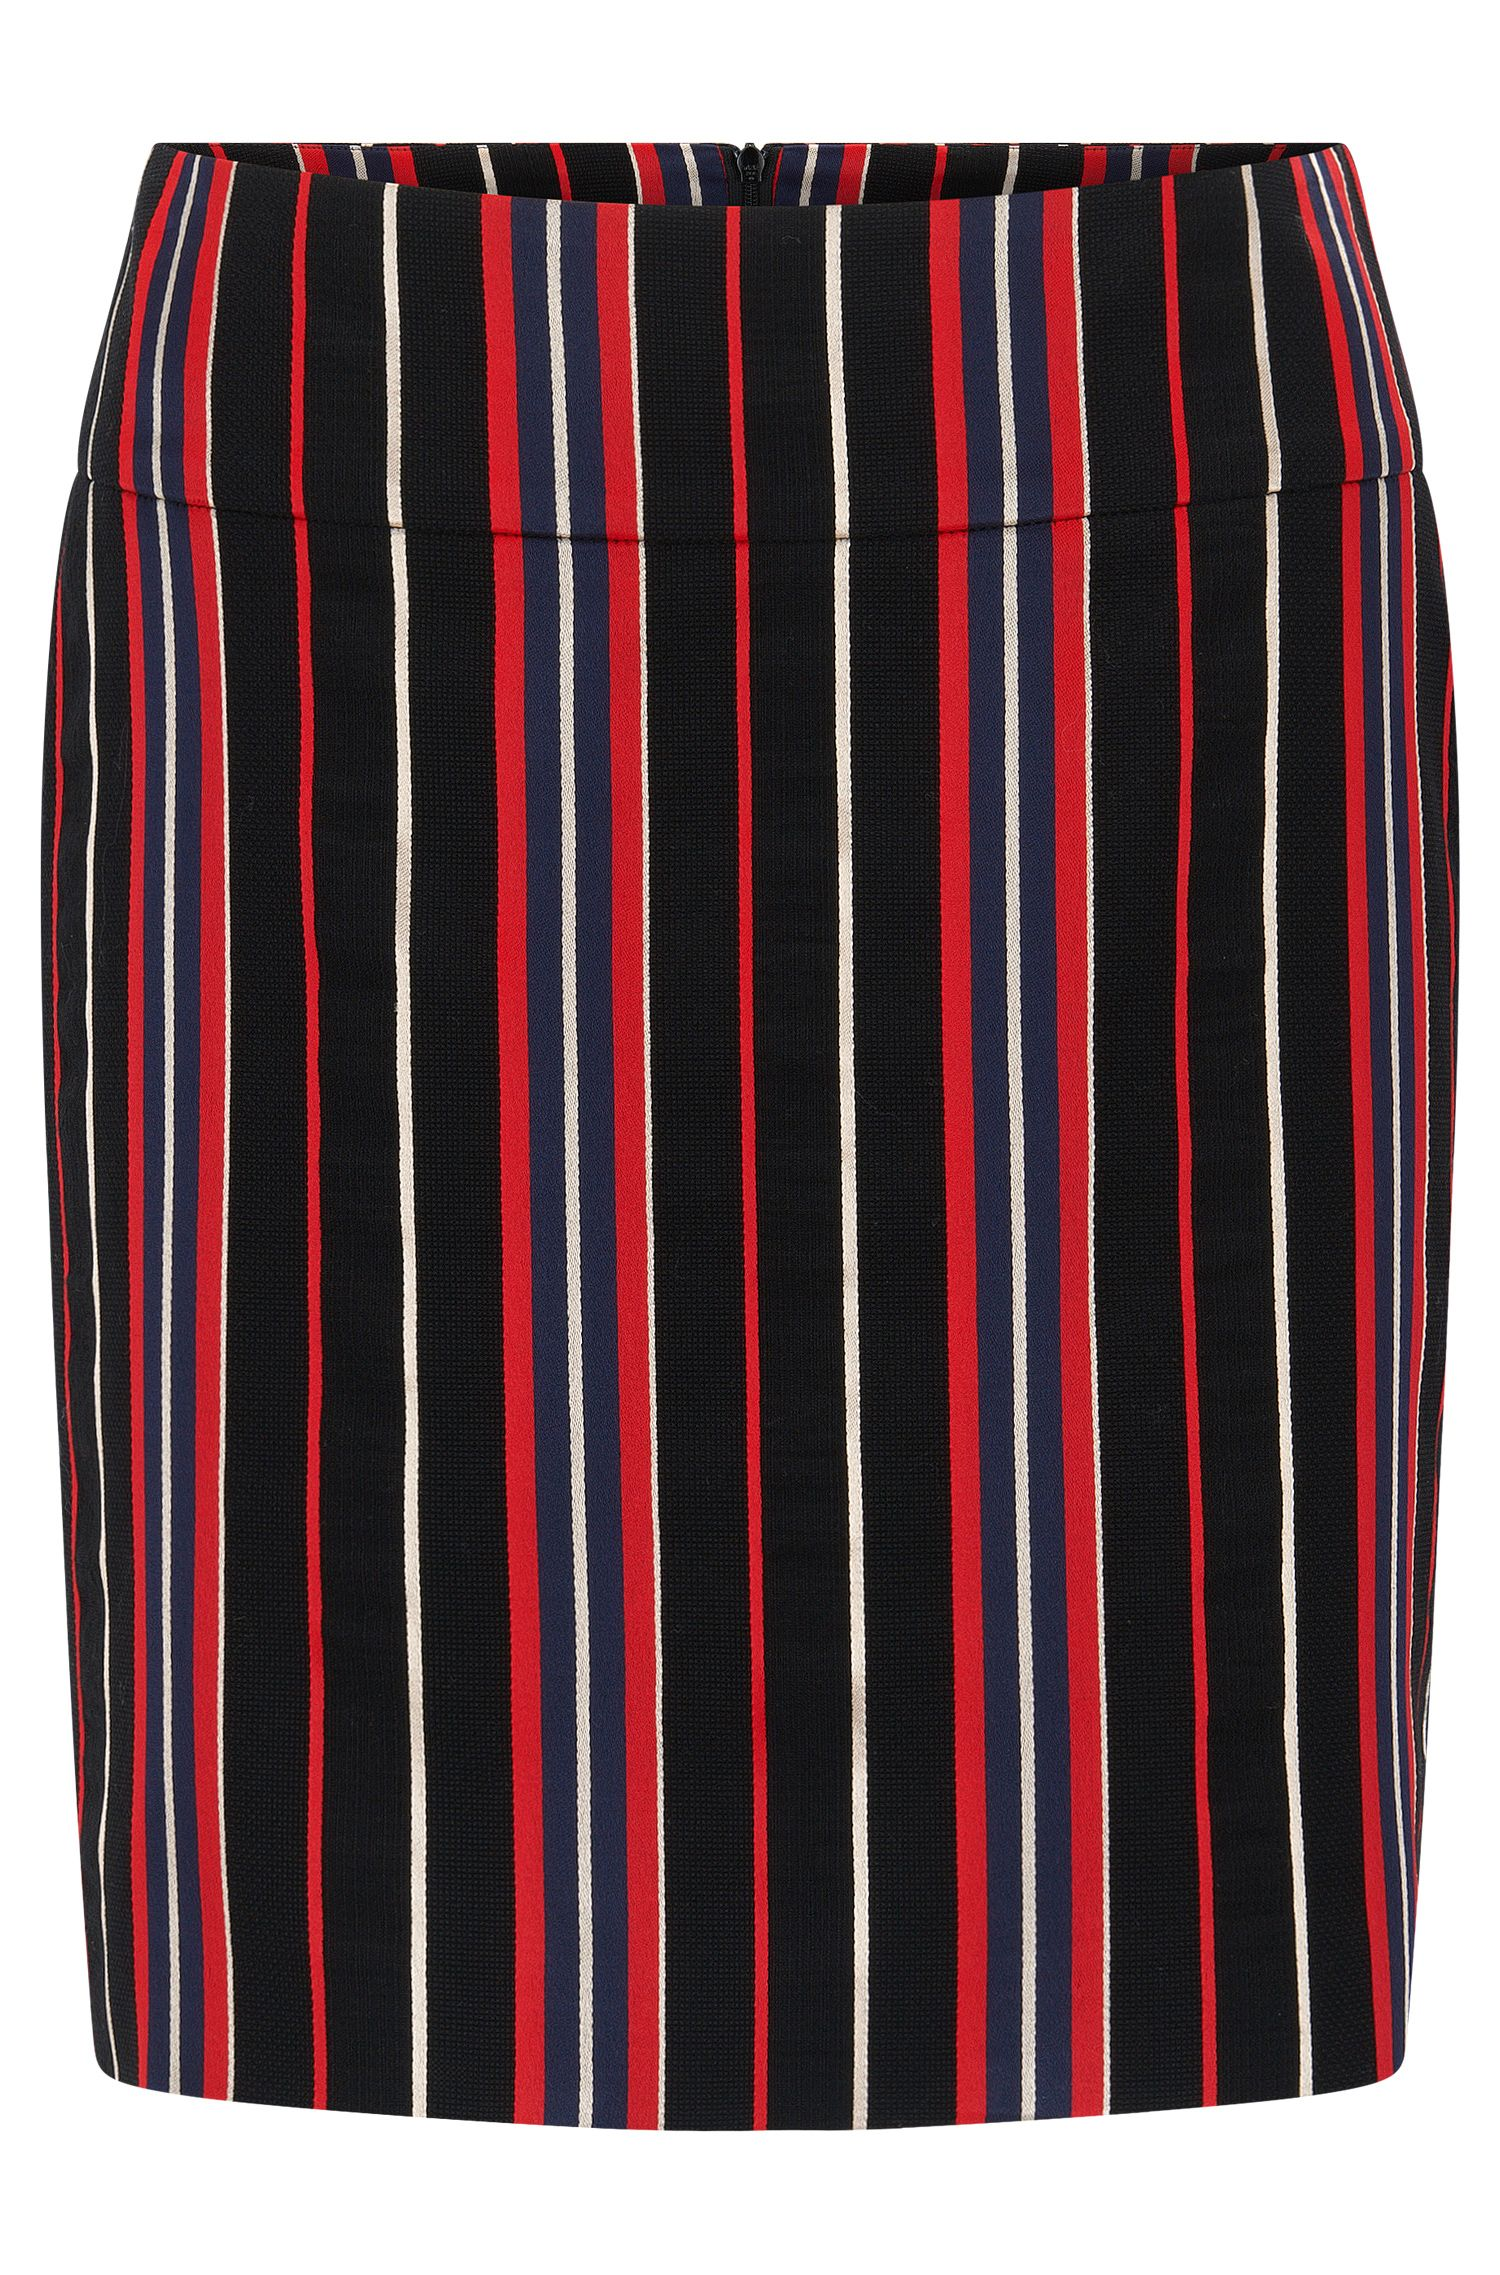 Regular-fit skirt in a striped cotton blend